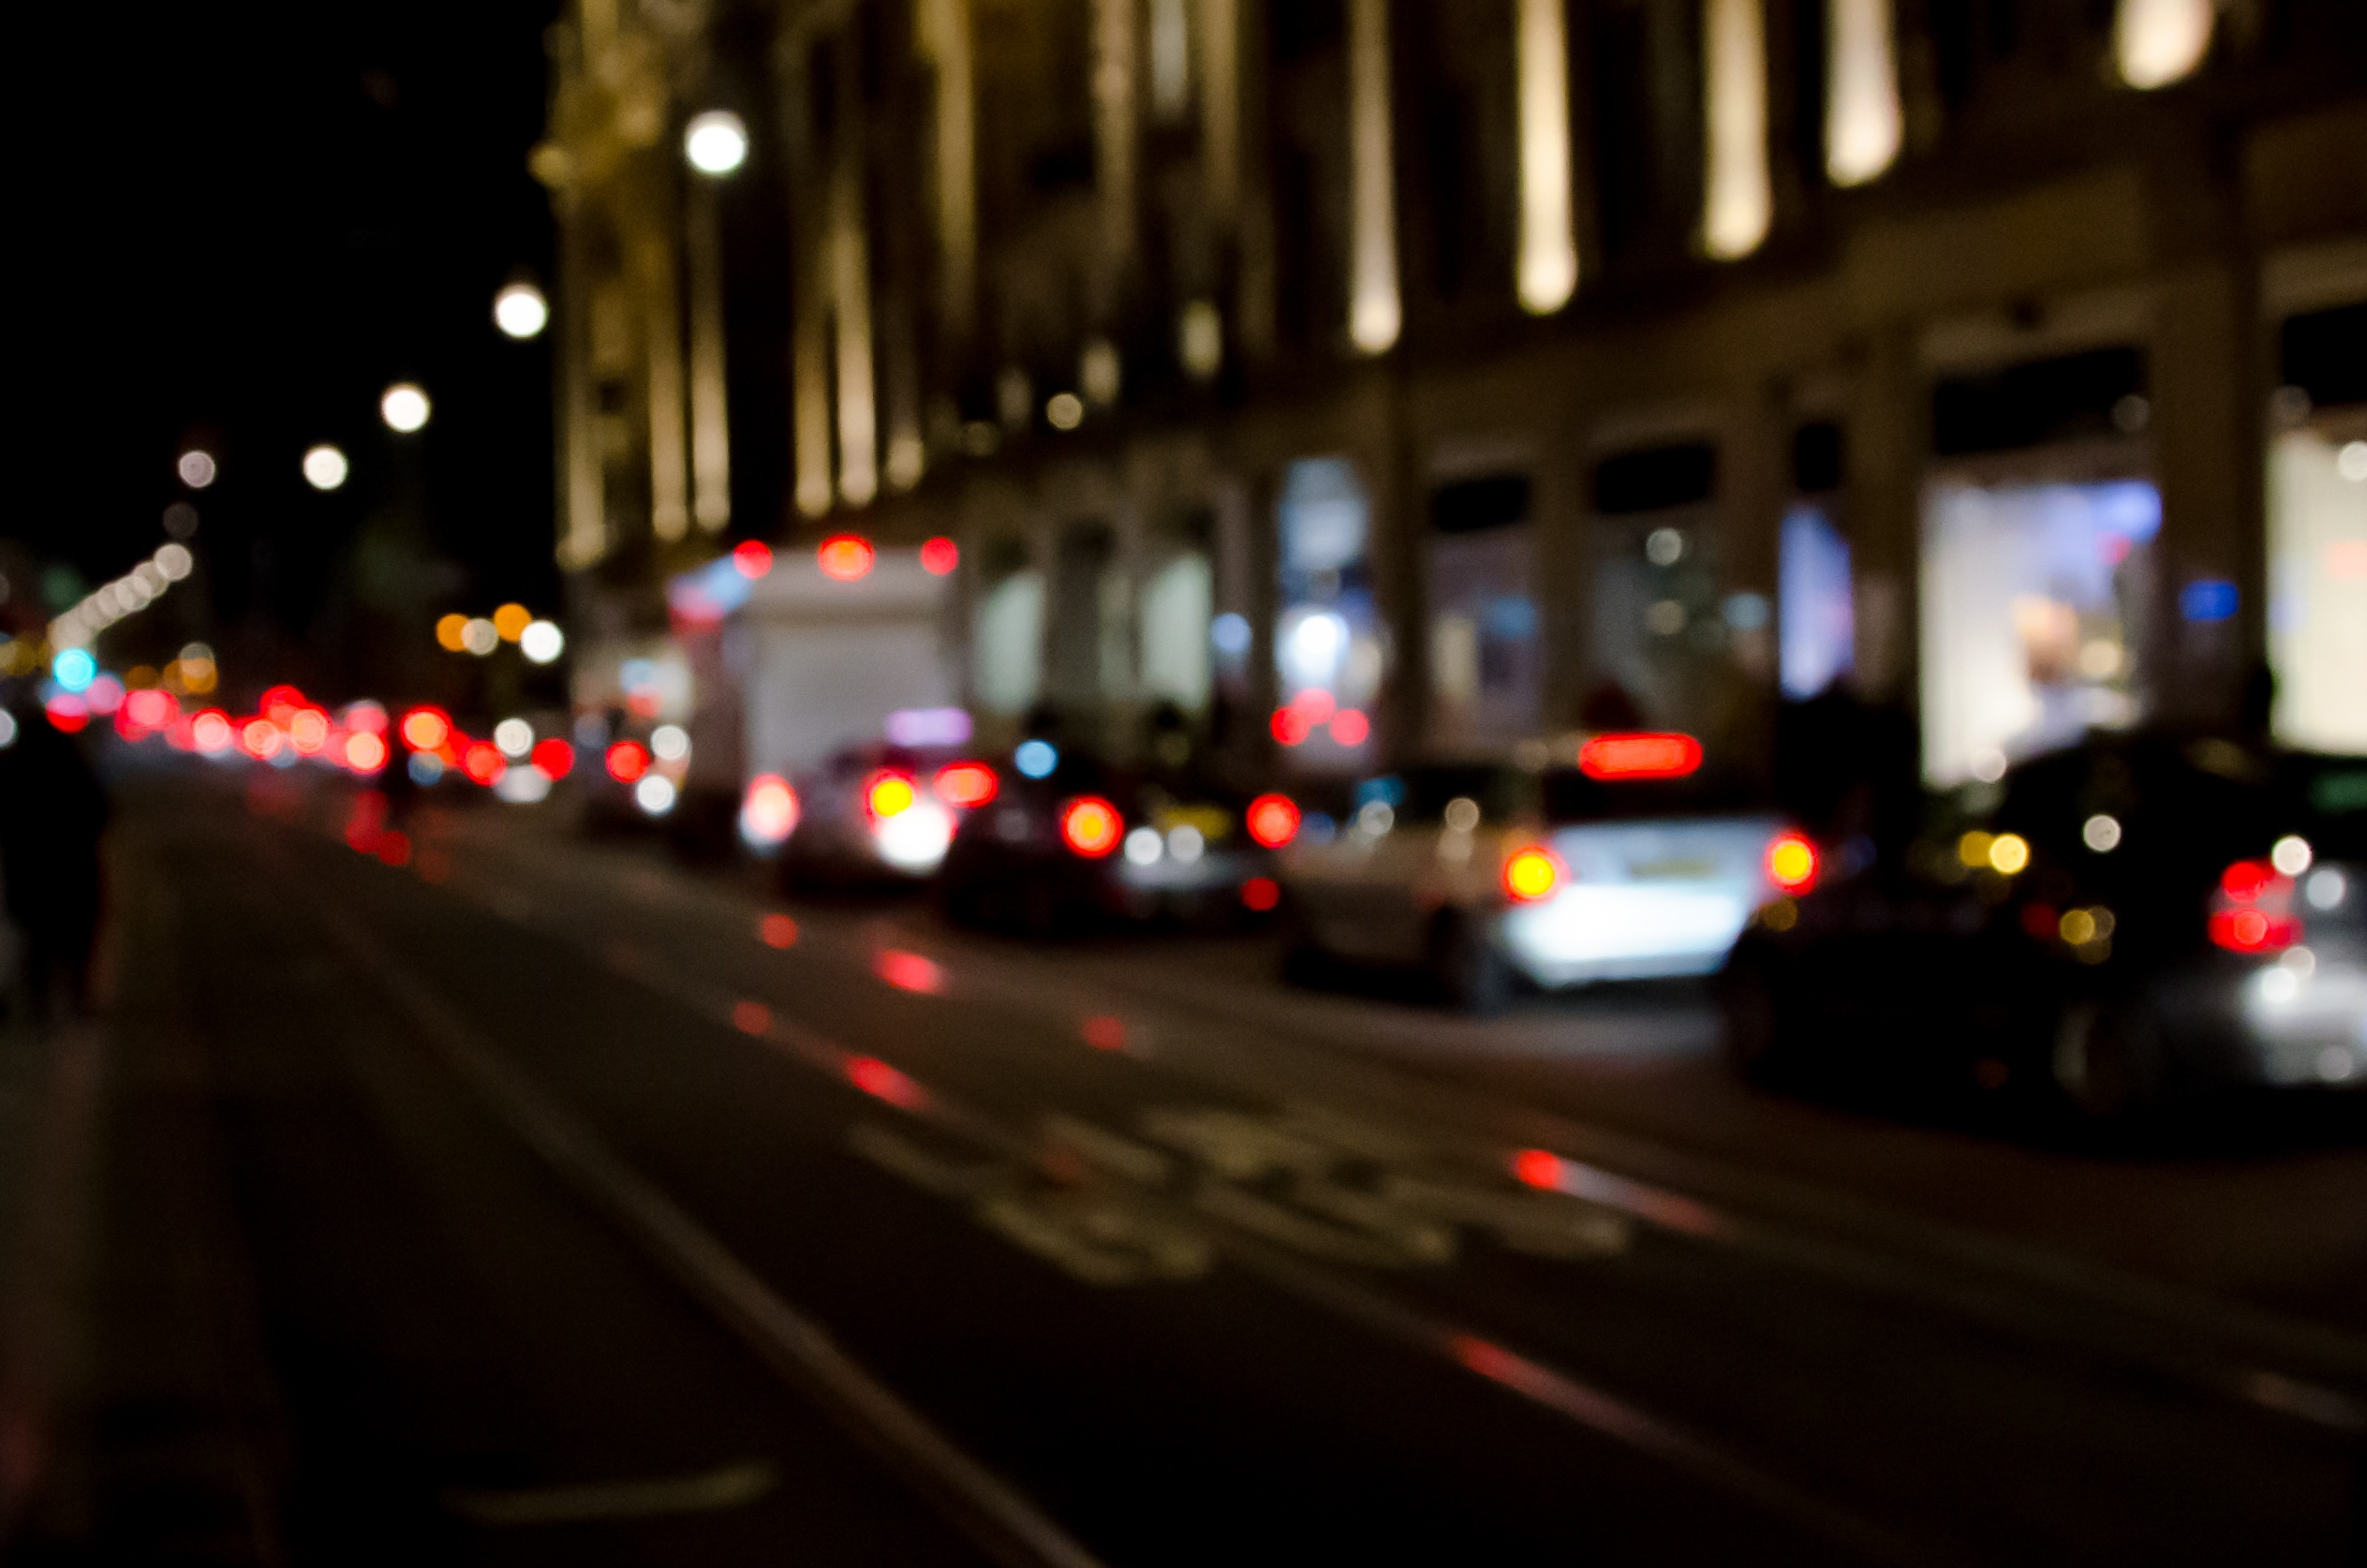 City at Night, Architecture, Bokeh, Building, Busy, HQ Photo